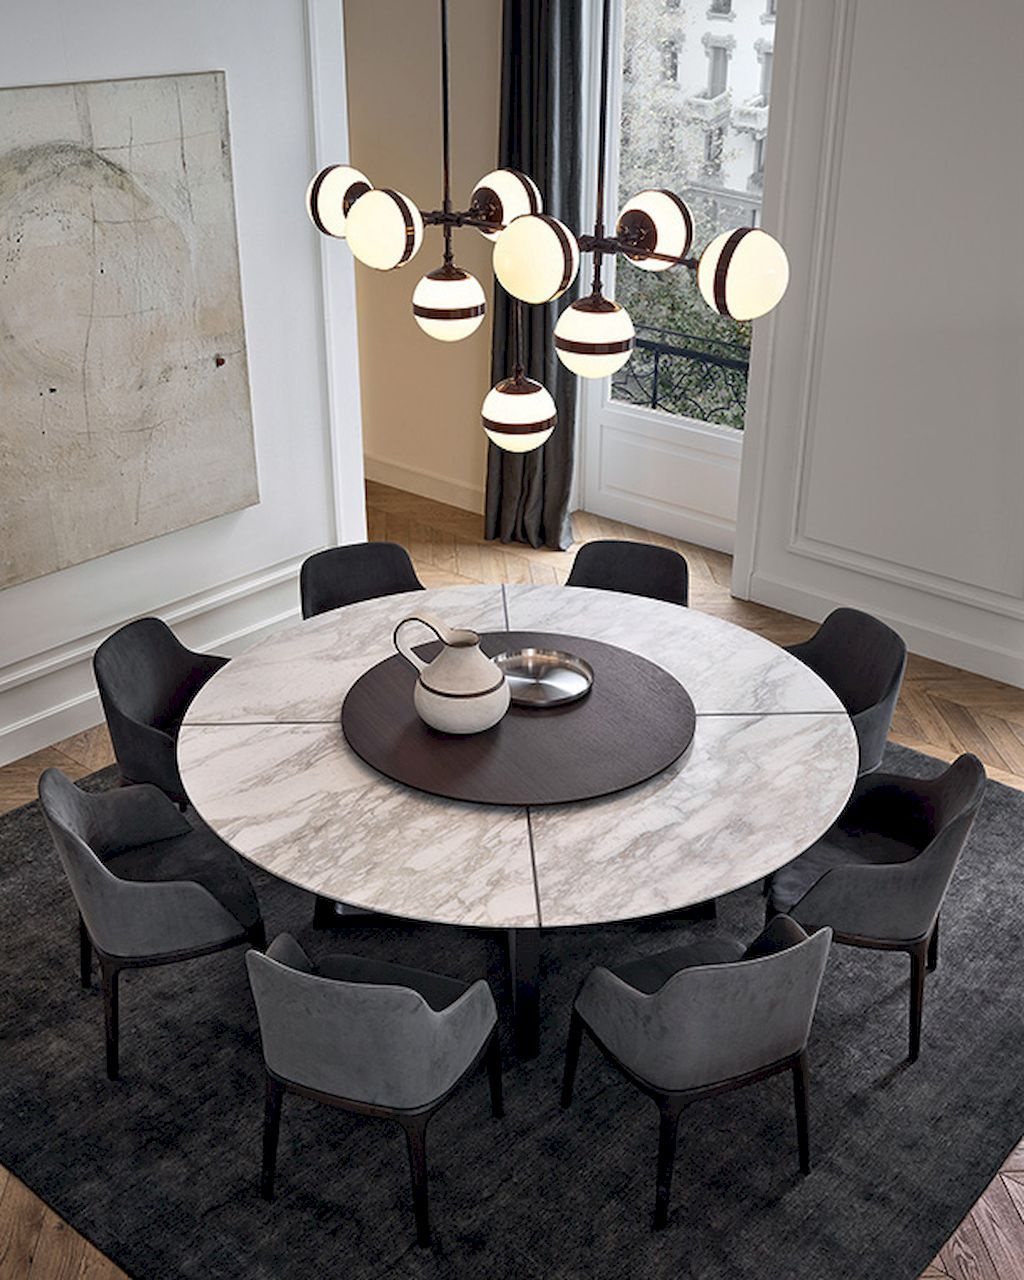 Adorable 80 Beautiful Modern Dining Room Decorating Ideas Https Inspiration Average Dining Room Table Width Decorating Design